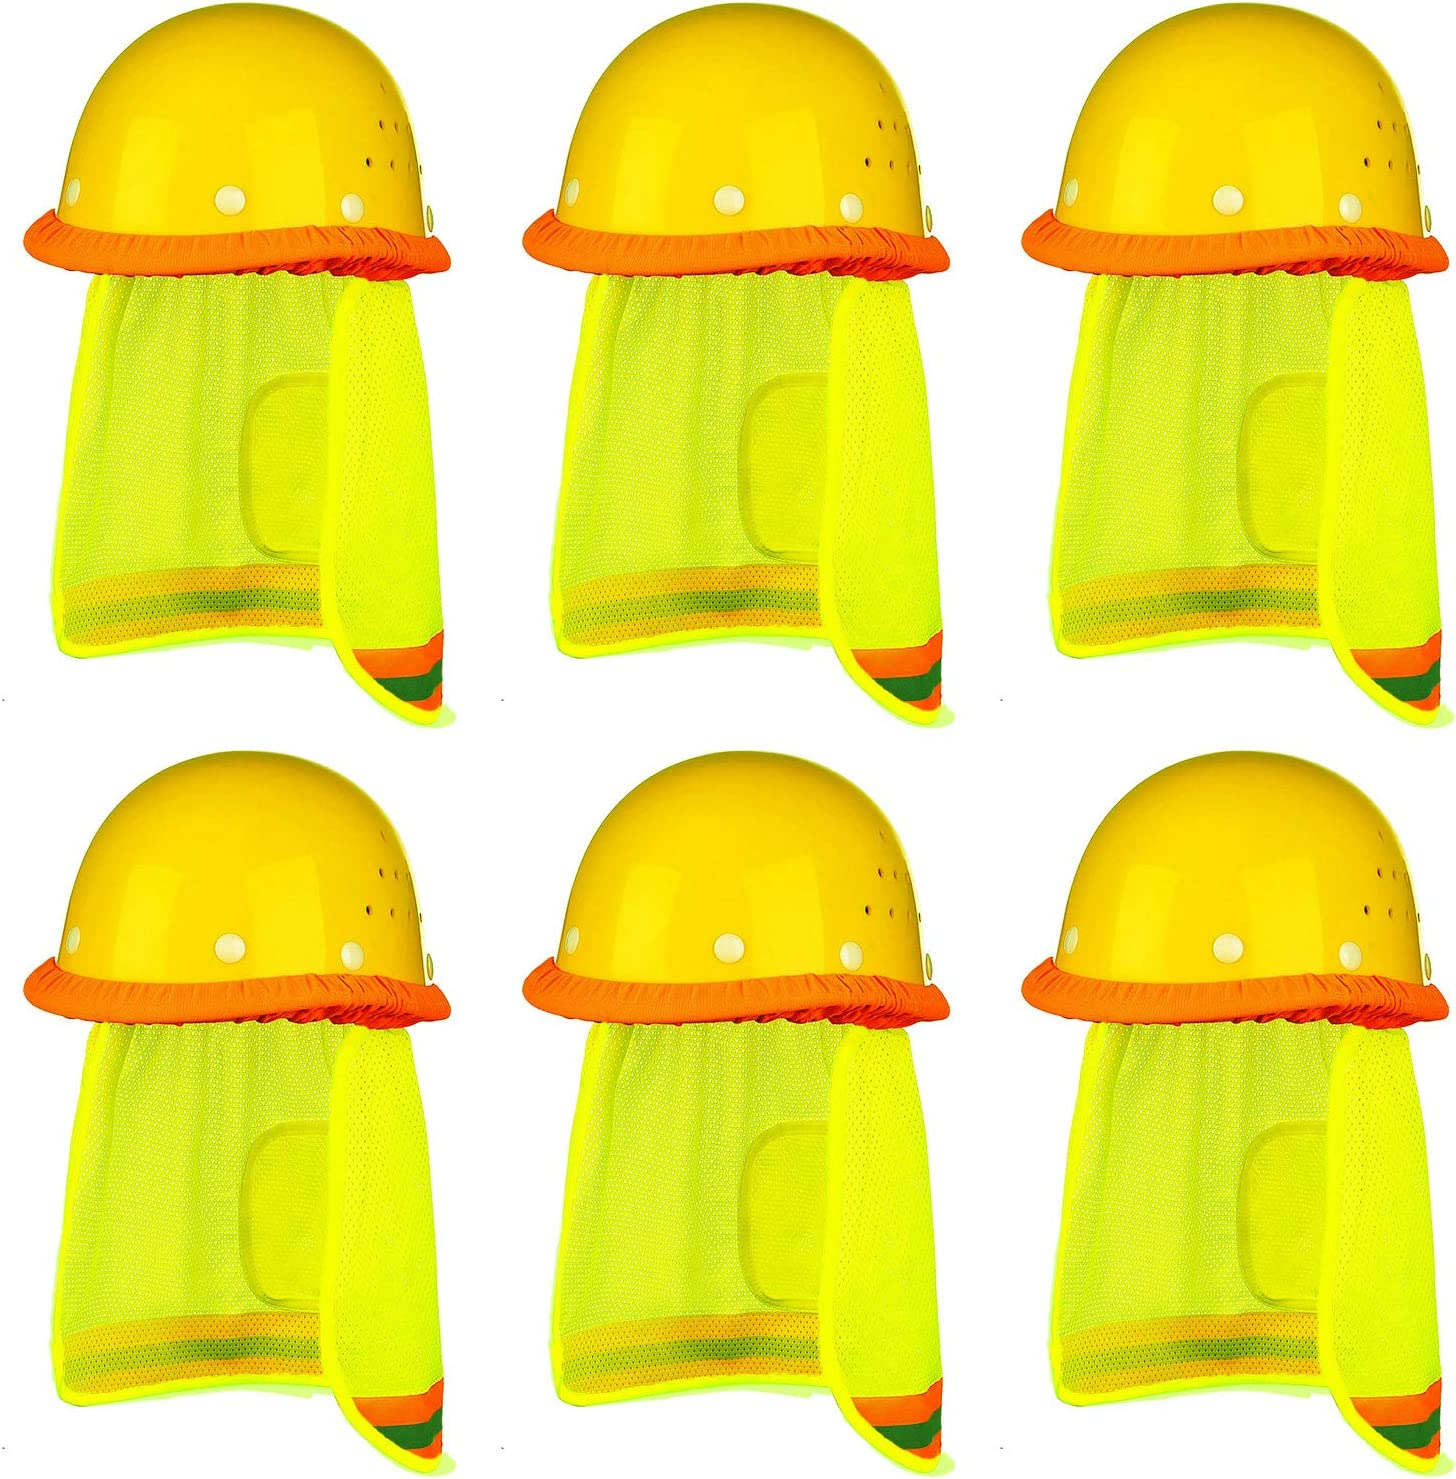 Trounistro 6 Pack Hard Hat Sun Shield Full Brim Mesh Neck Sunshade with Reflective Stripe Mesh Sun Shade Protector